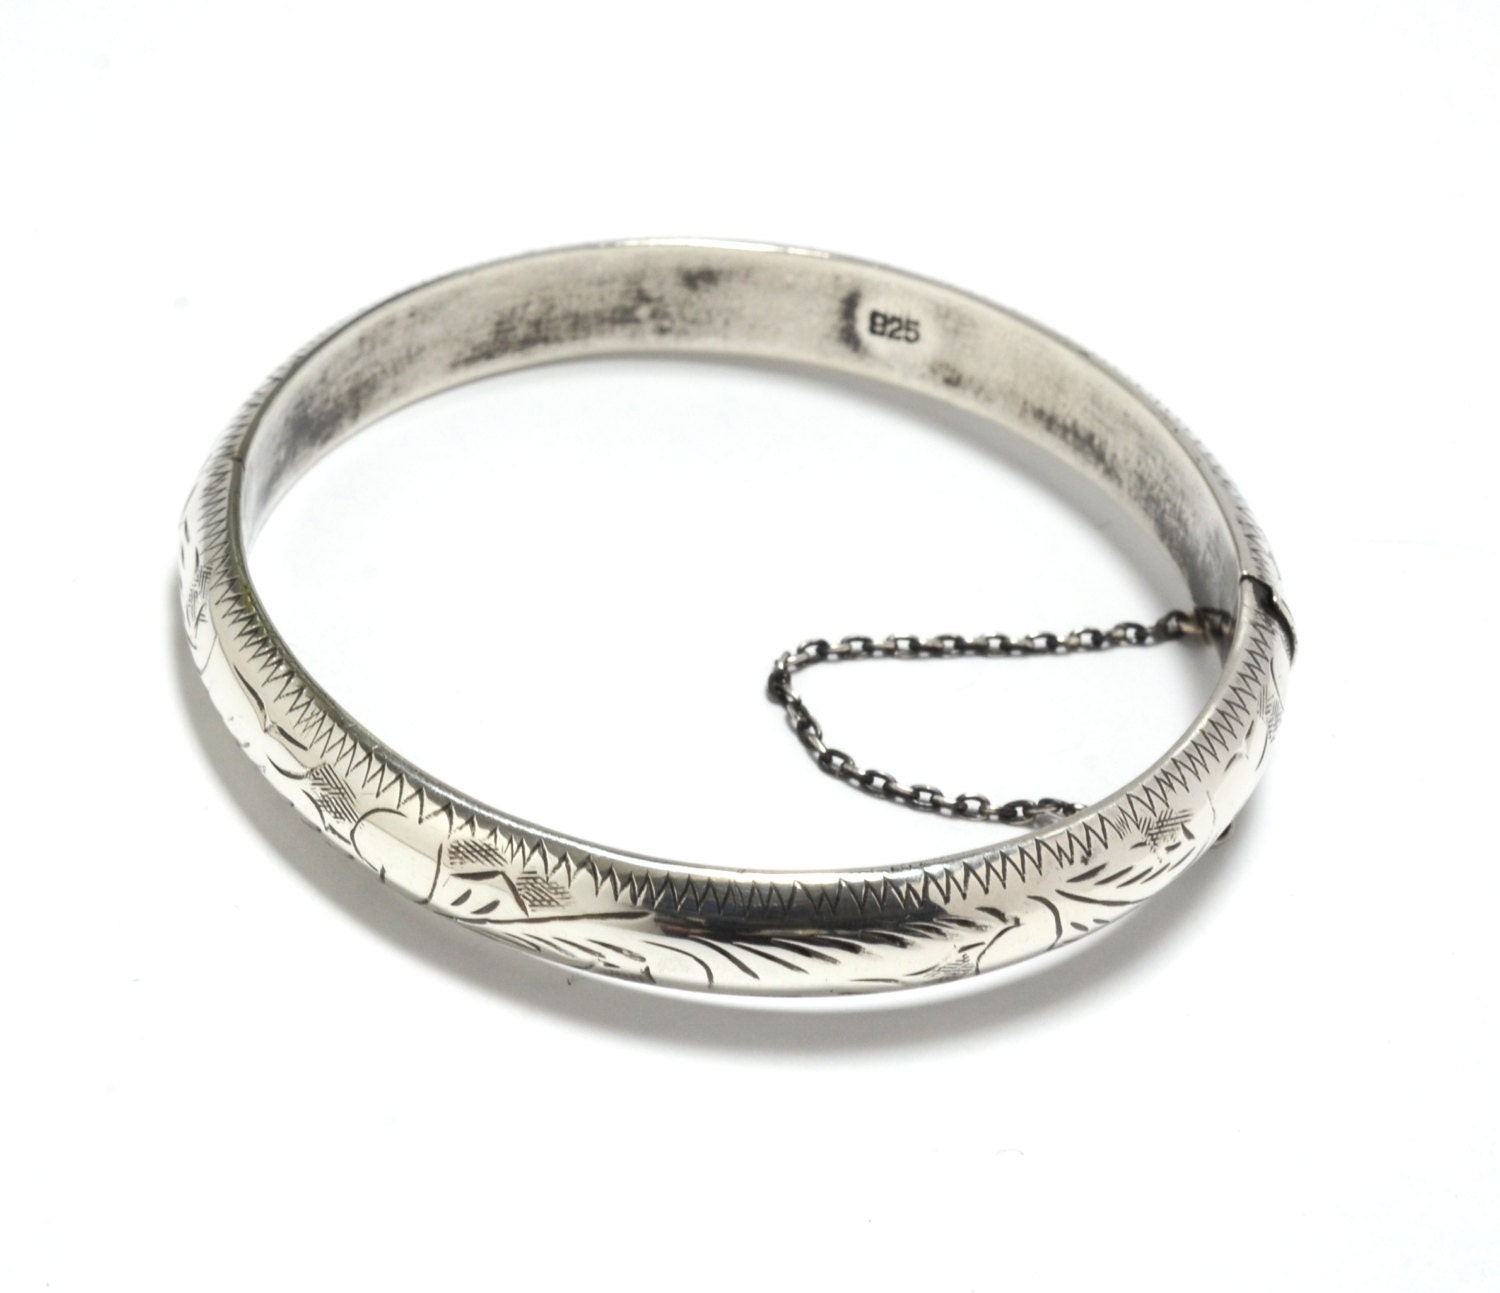 mexico sterling silver engraved bangle bracelet. Black Bedroom Furniture Sets. Home Design Ideas